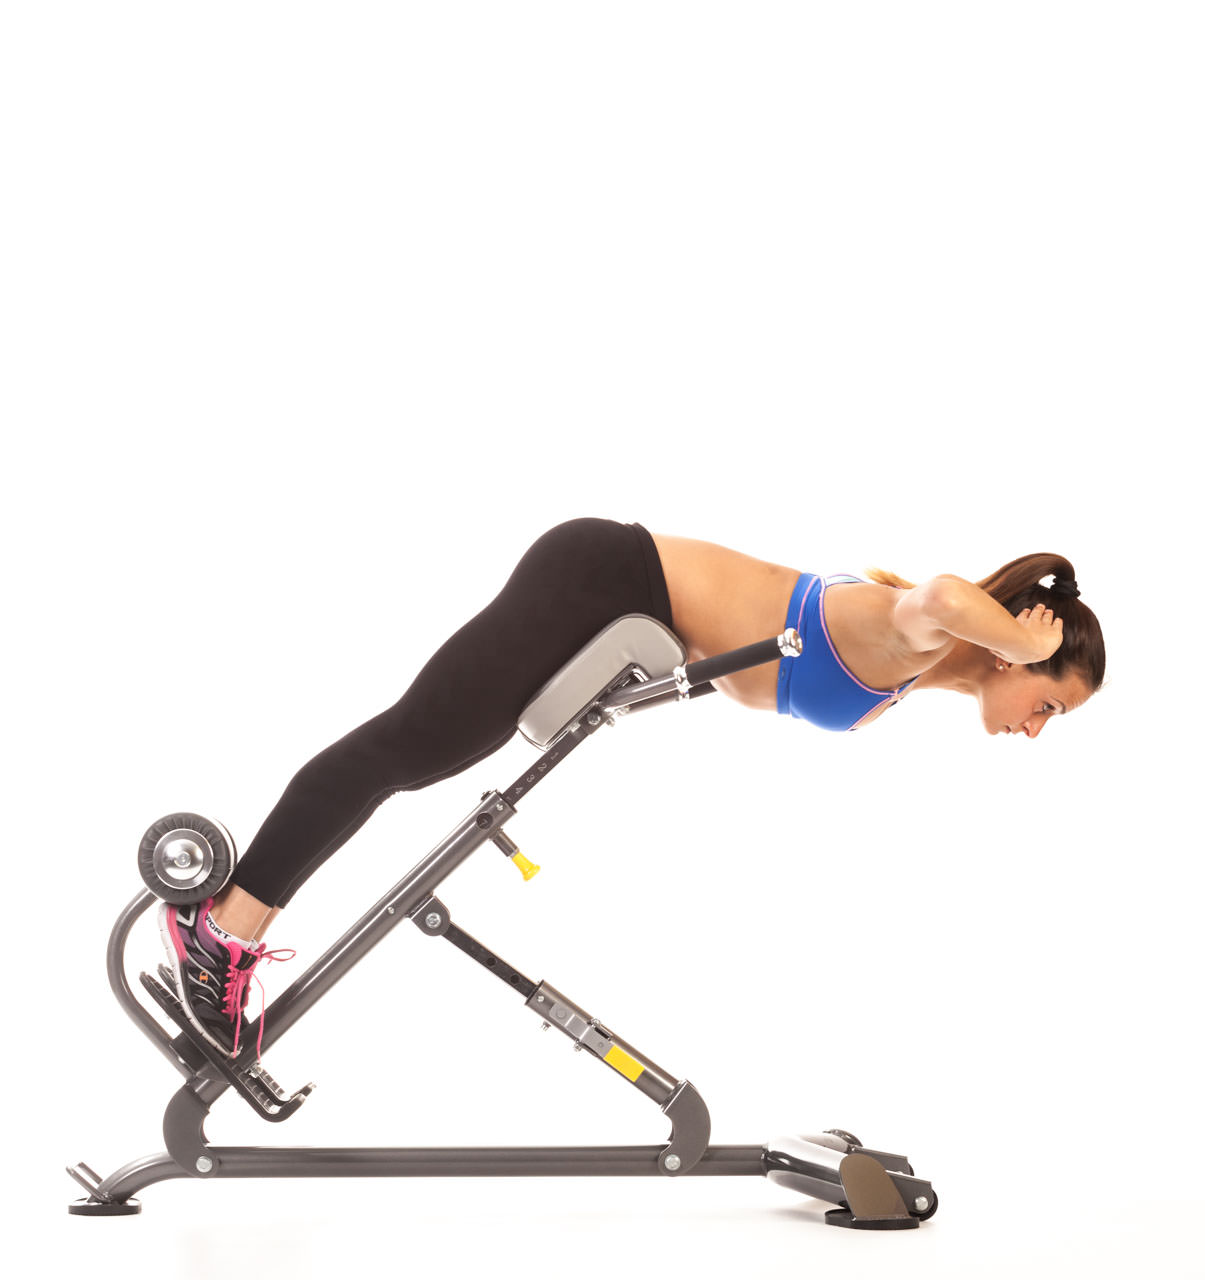 Back Extension (Hyperextension Bench) frame #2